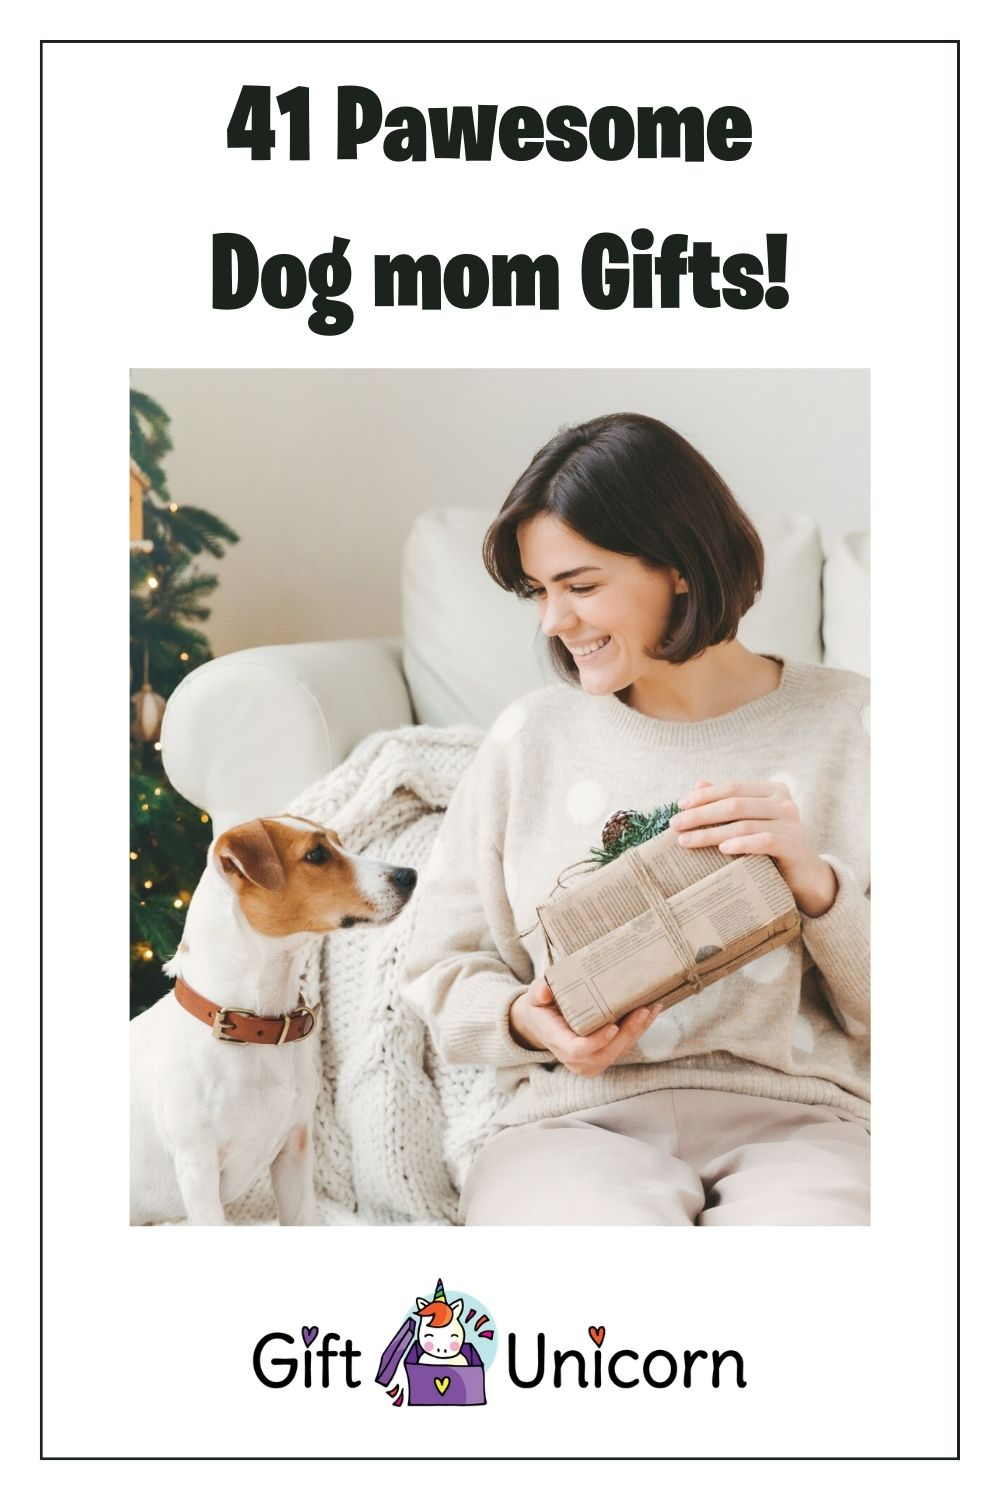 41 Pawesome dog mom gifts